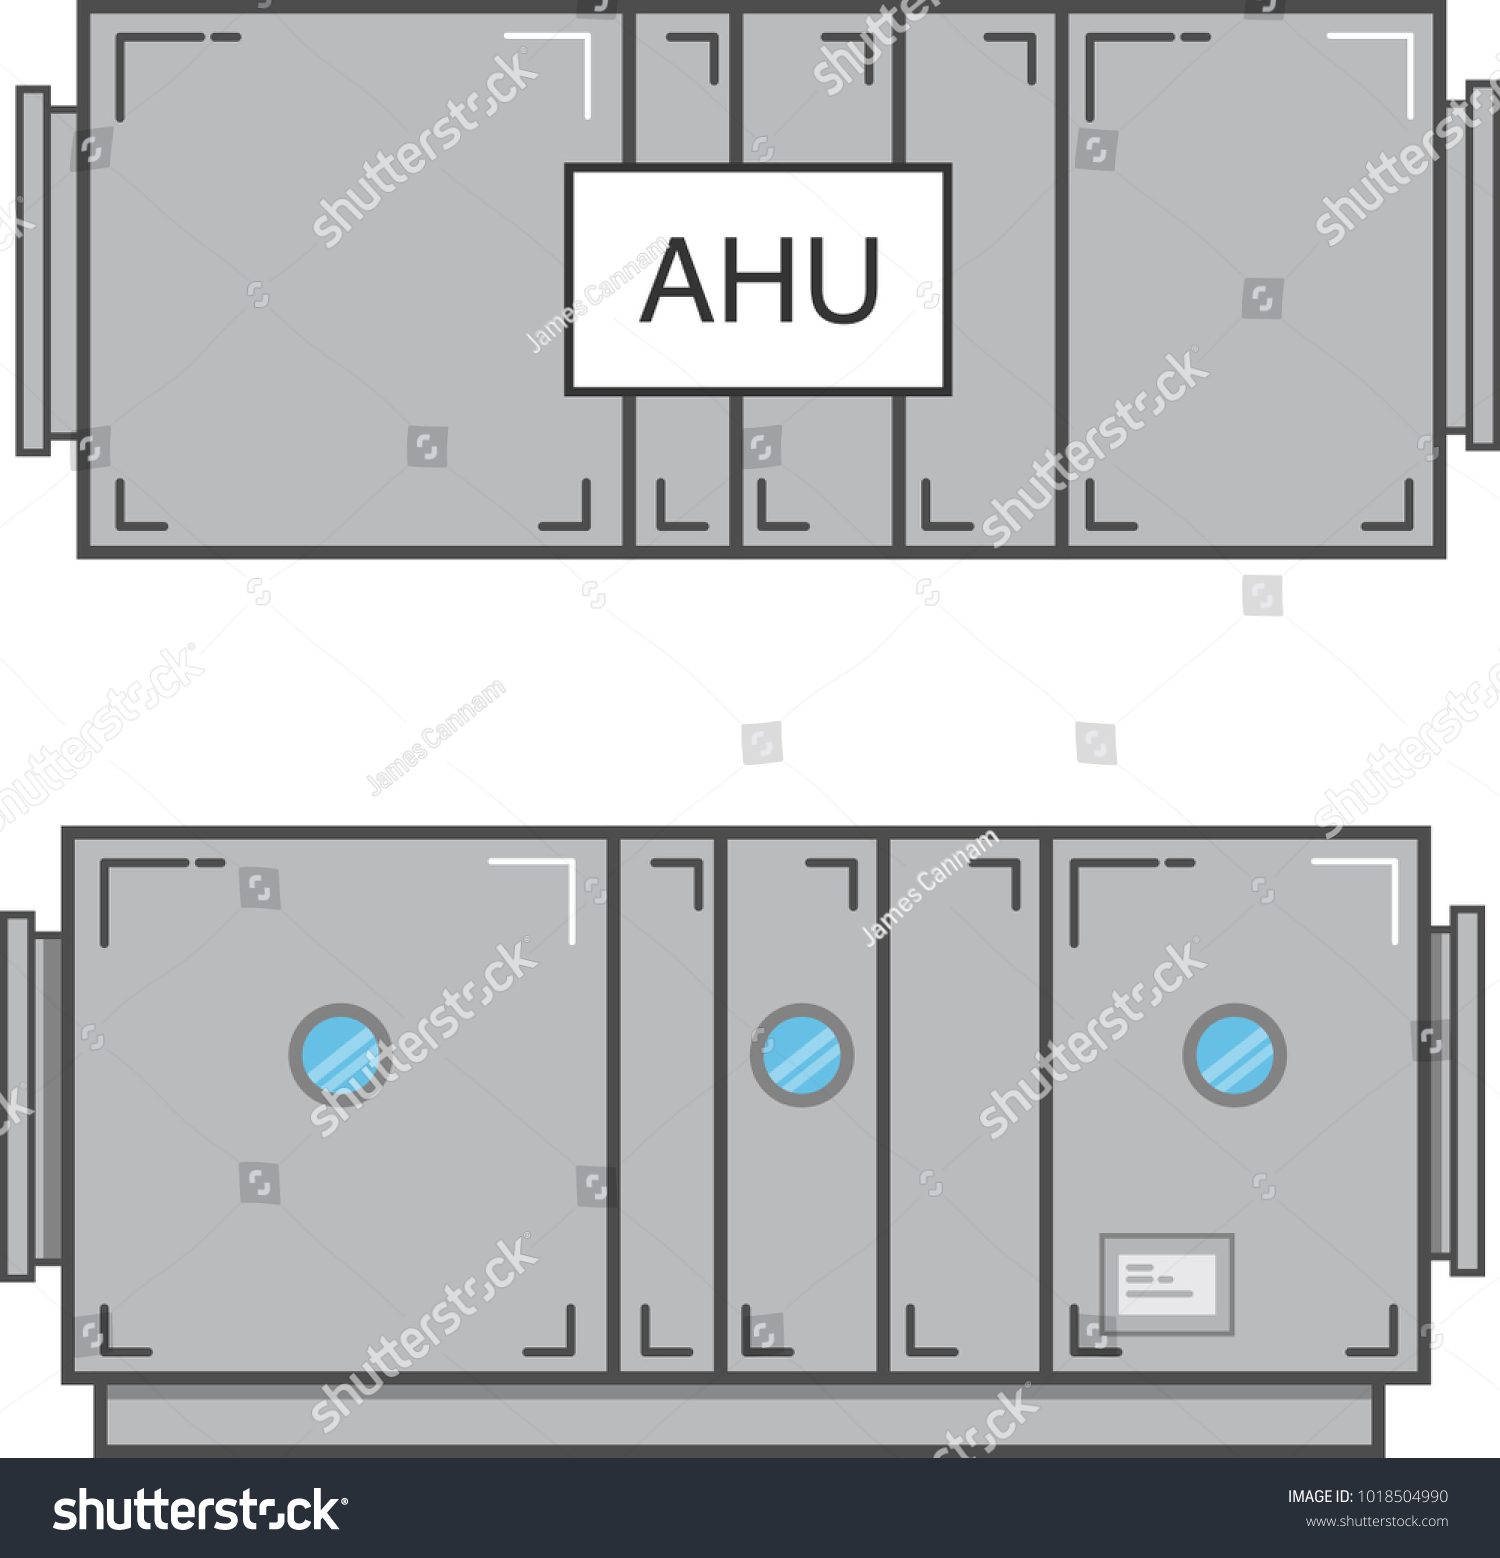 hight resolution of air handling unit plan view and section view flat vector illustration isolated on white background